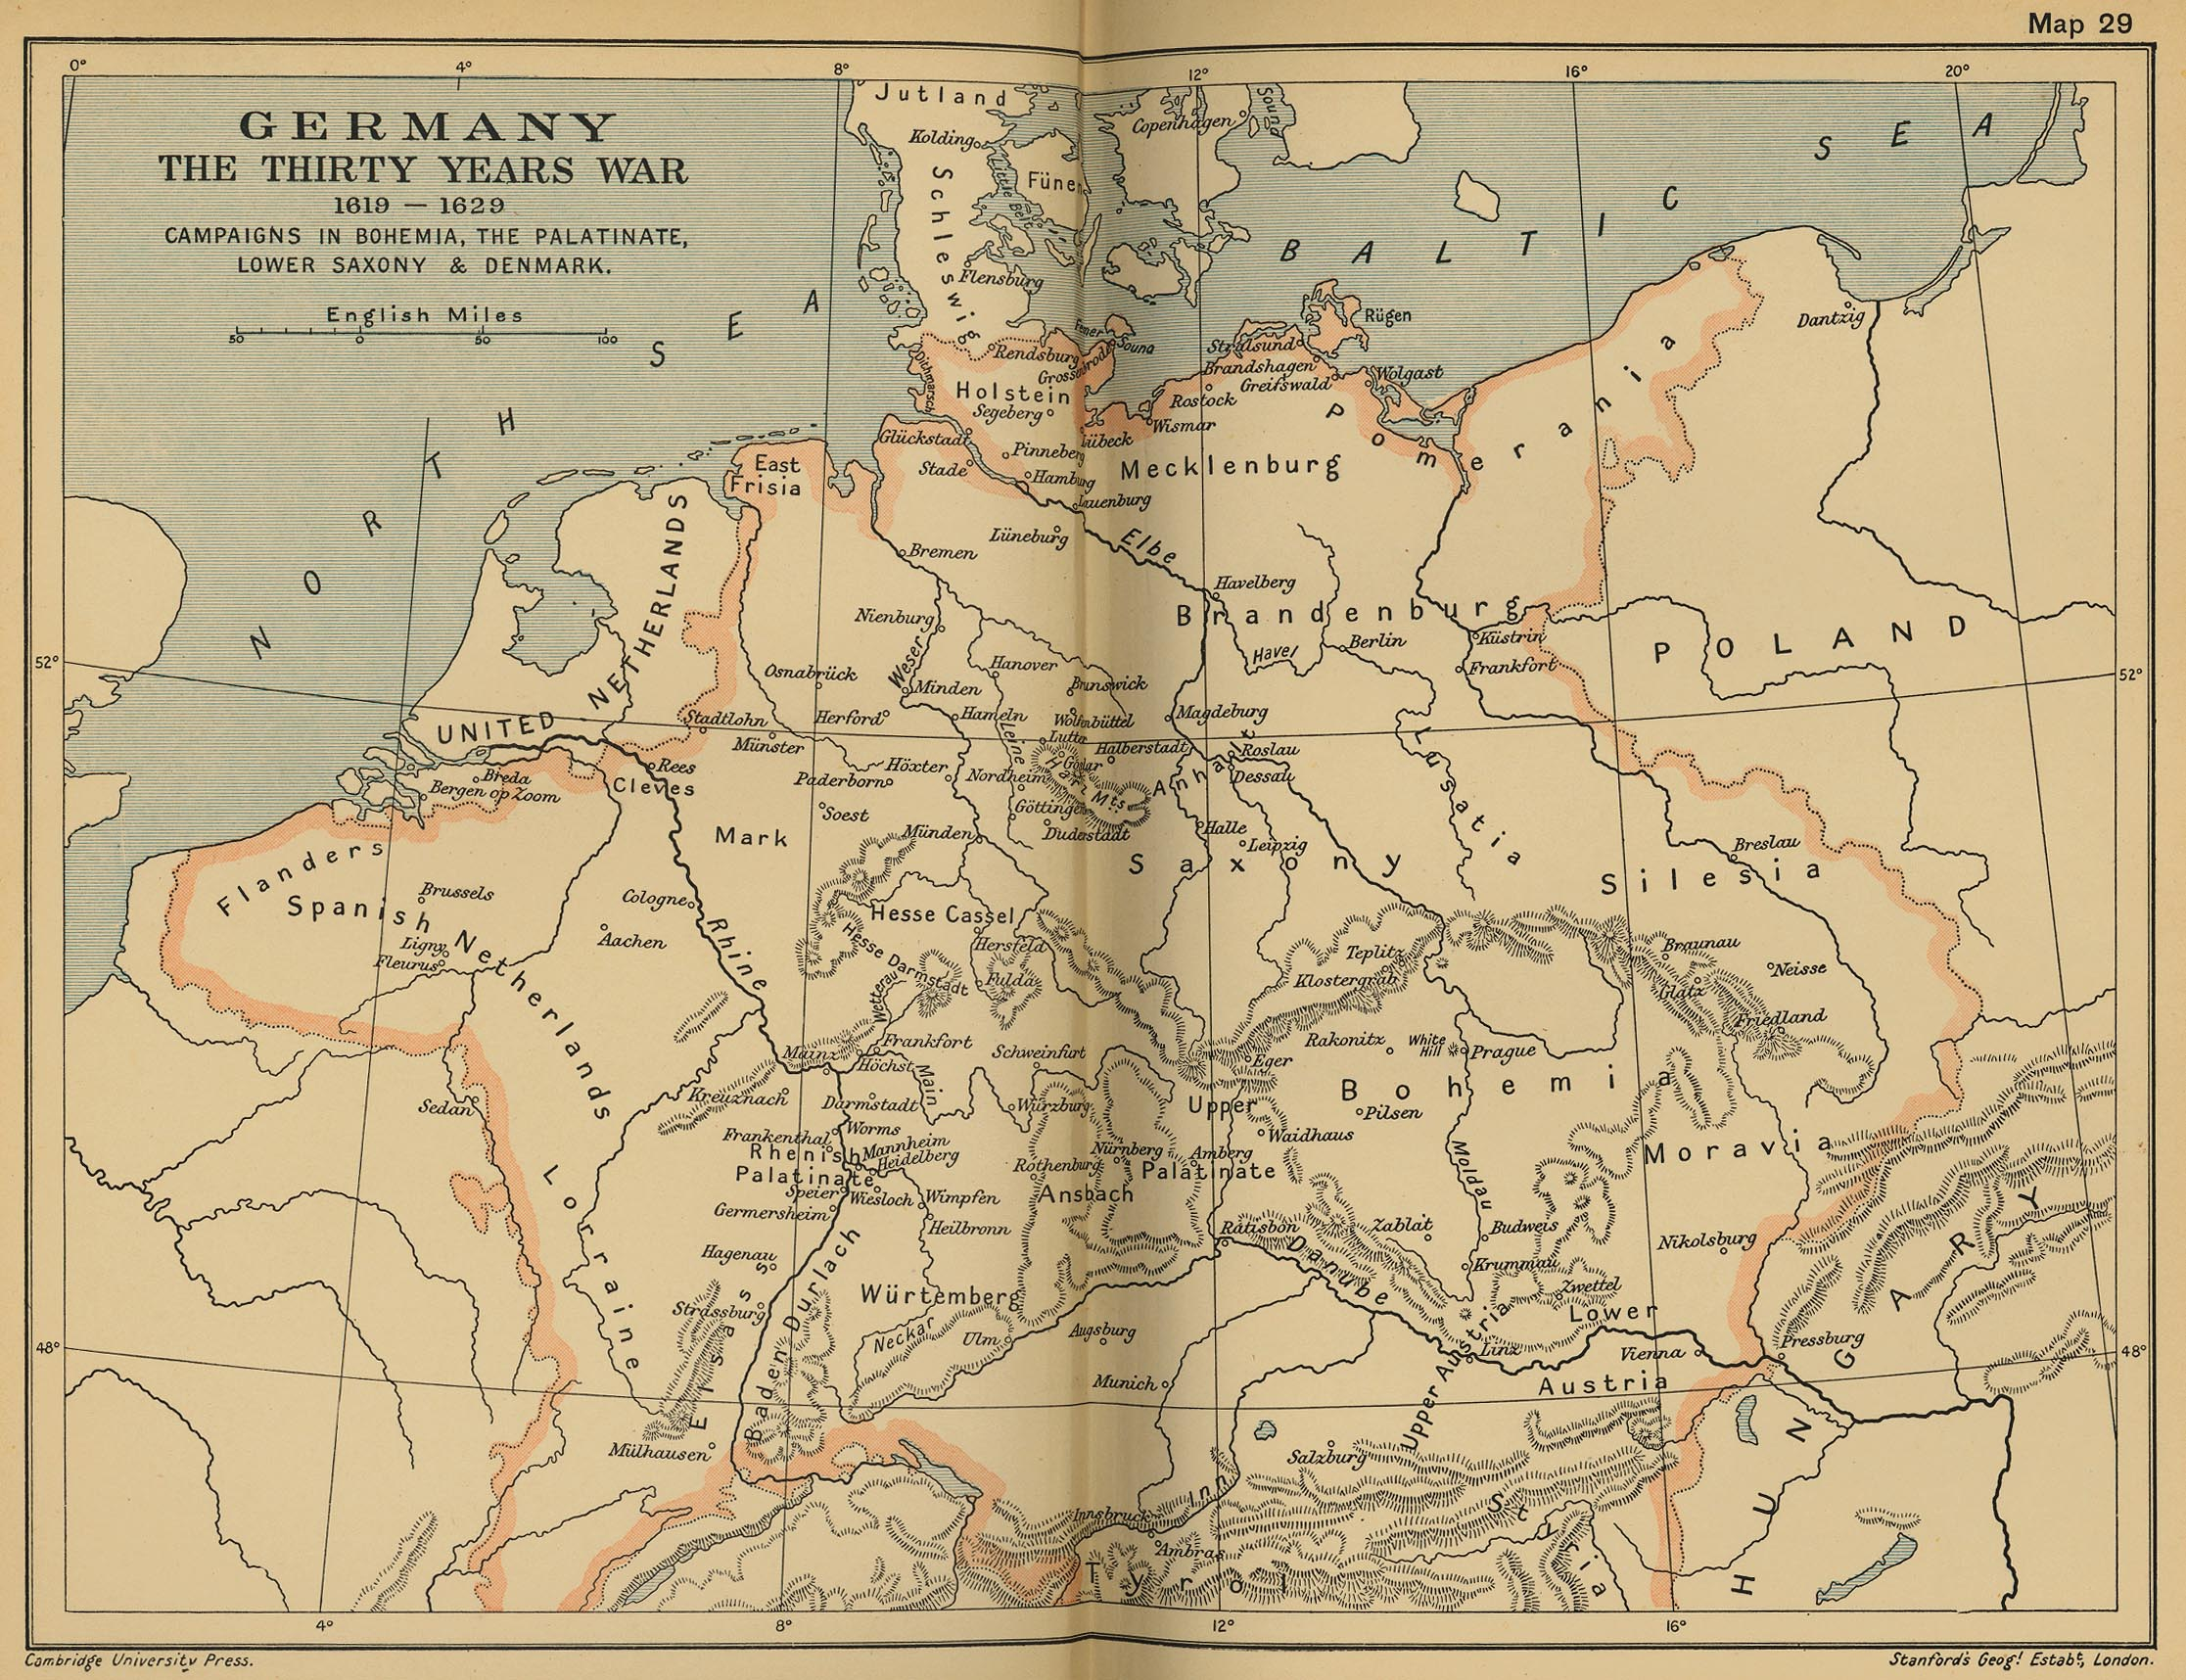 Germany: The Thirty Years' War,1619-1629. Campaigns in Bohemia,